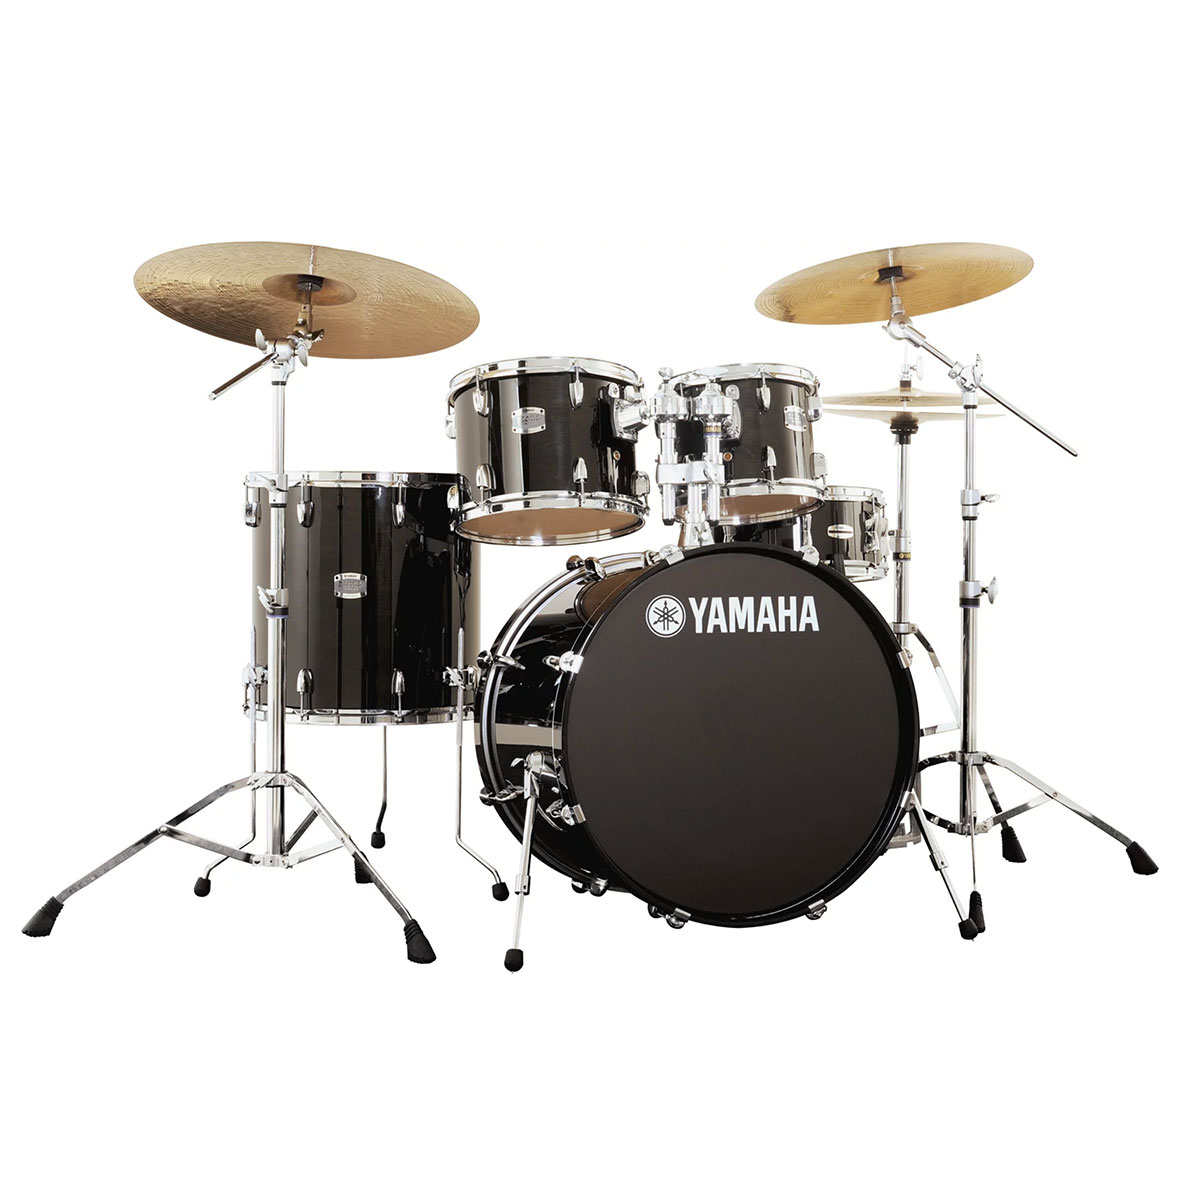 Yamaha SBP2F5 Stage Custom Birch Drum Kit<br>SBP2F5 RB